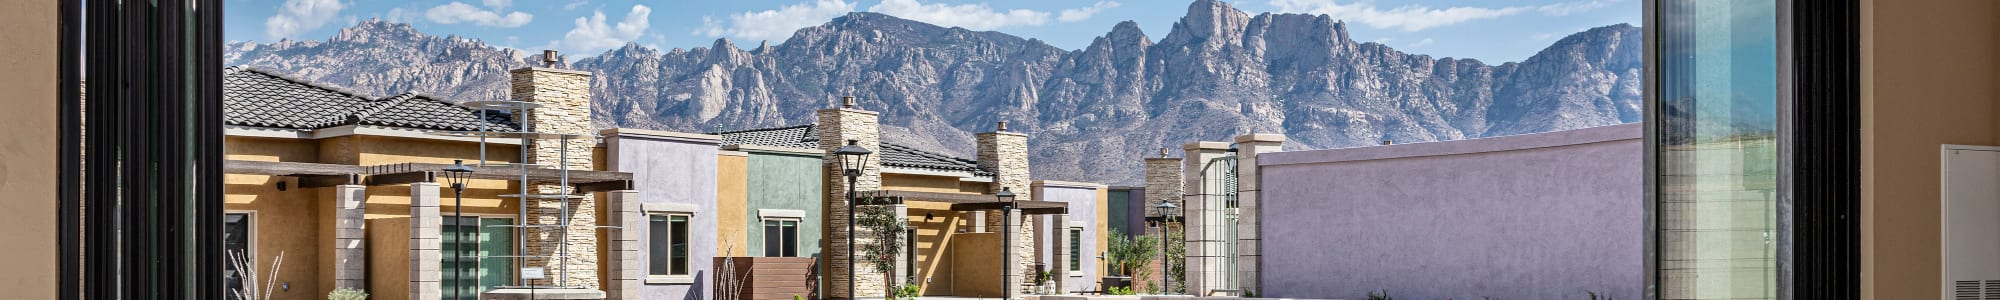 Gallery at All Seasons Oro Valley in Oro Valley, Arizona